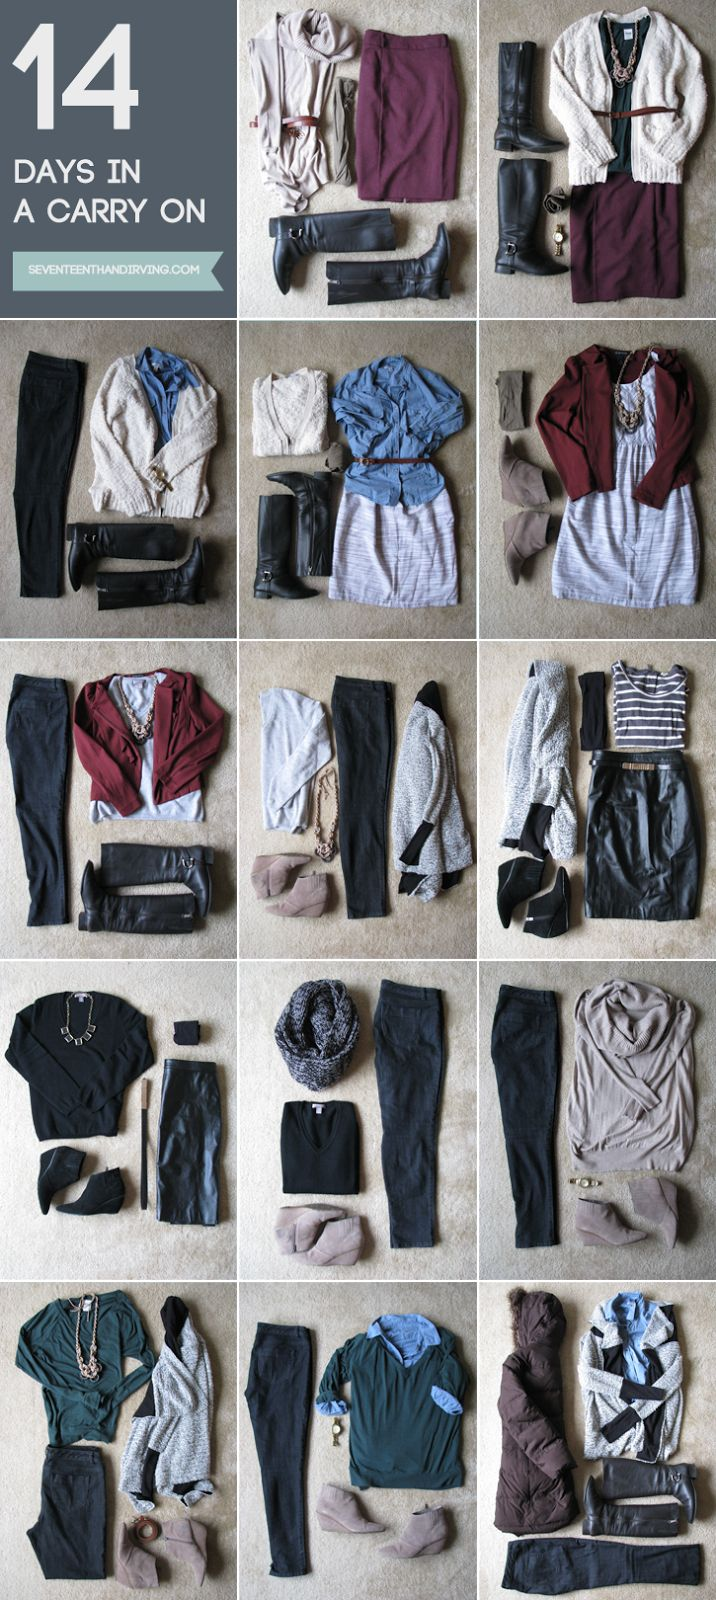 How to travel light. Pack enough clothes for 2 weeks by smart